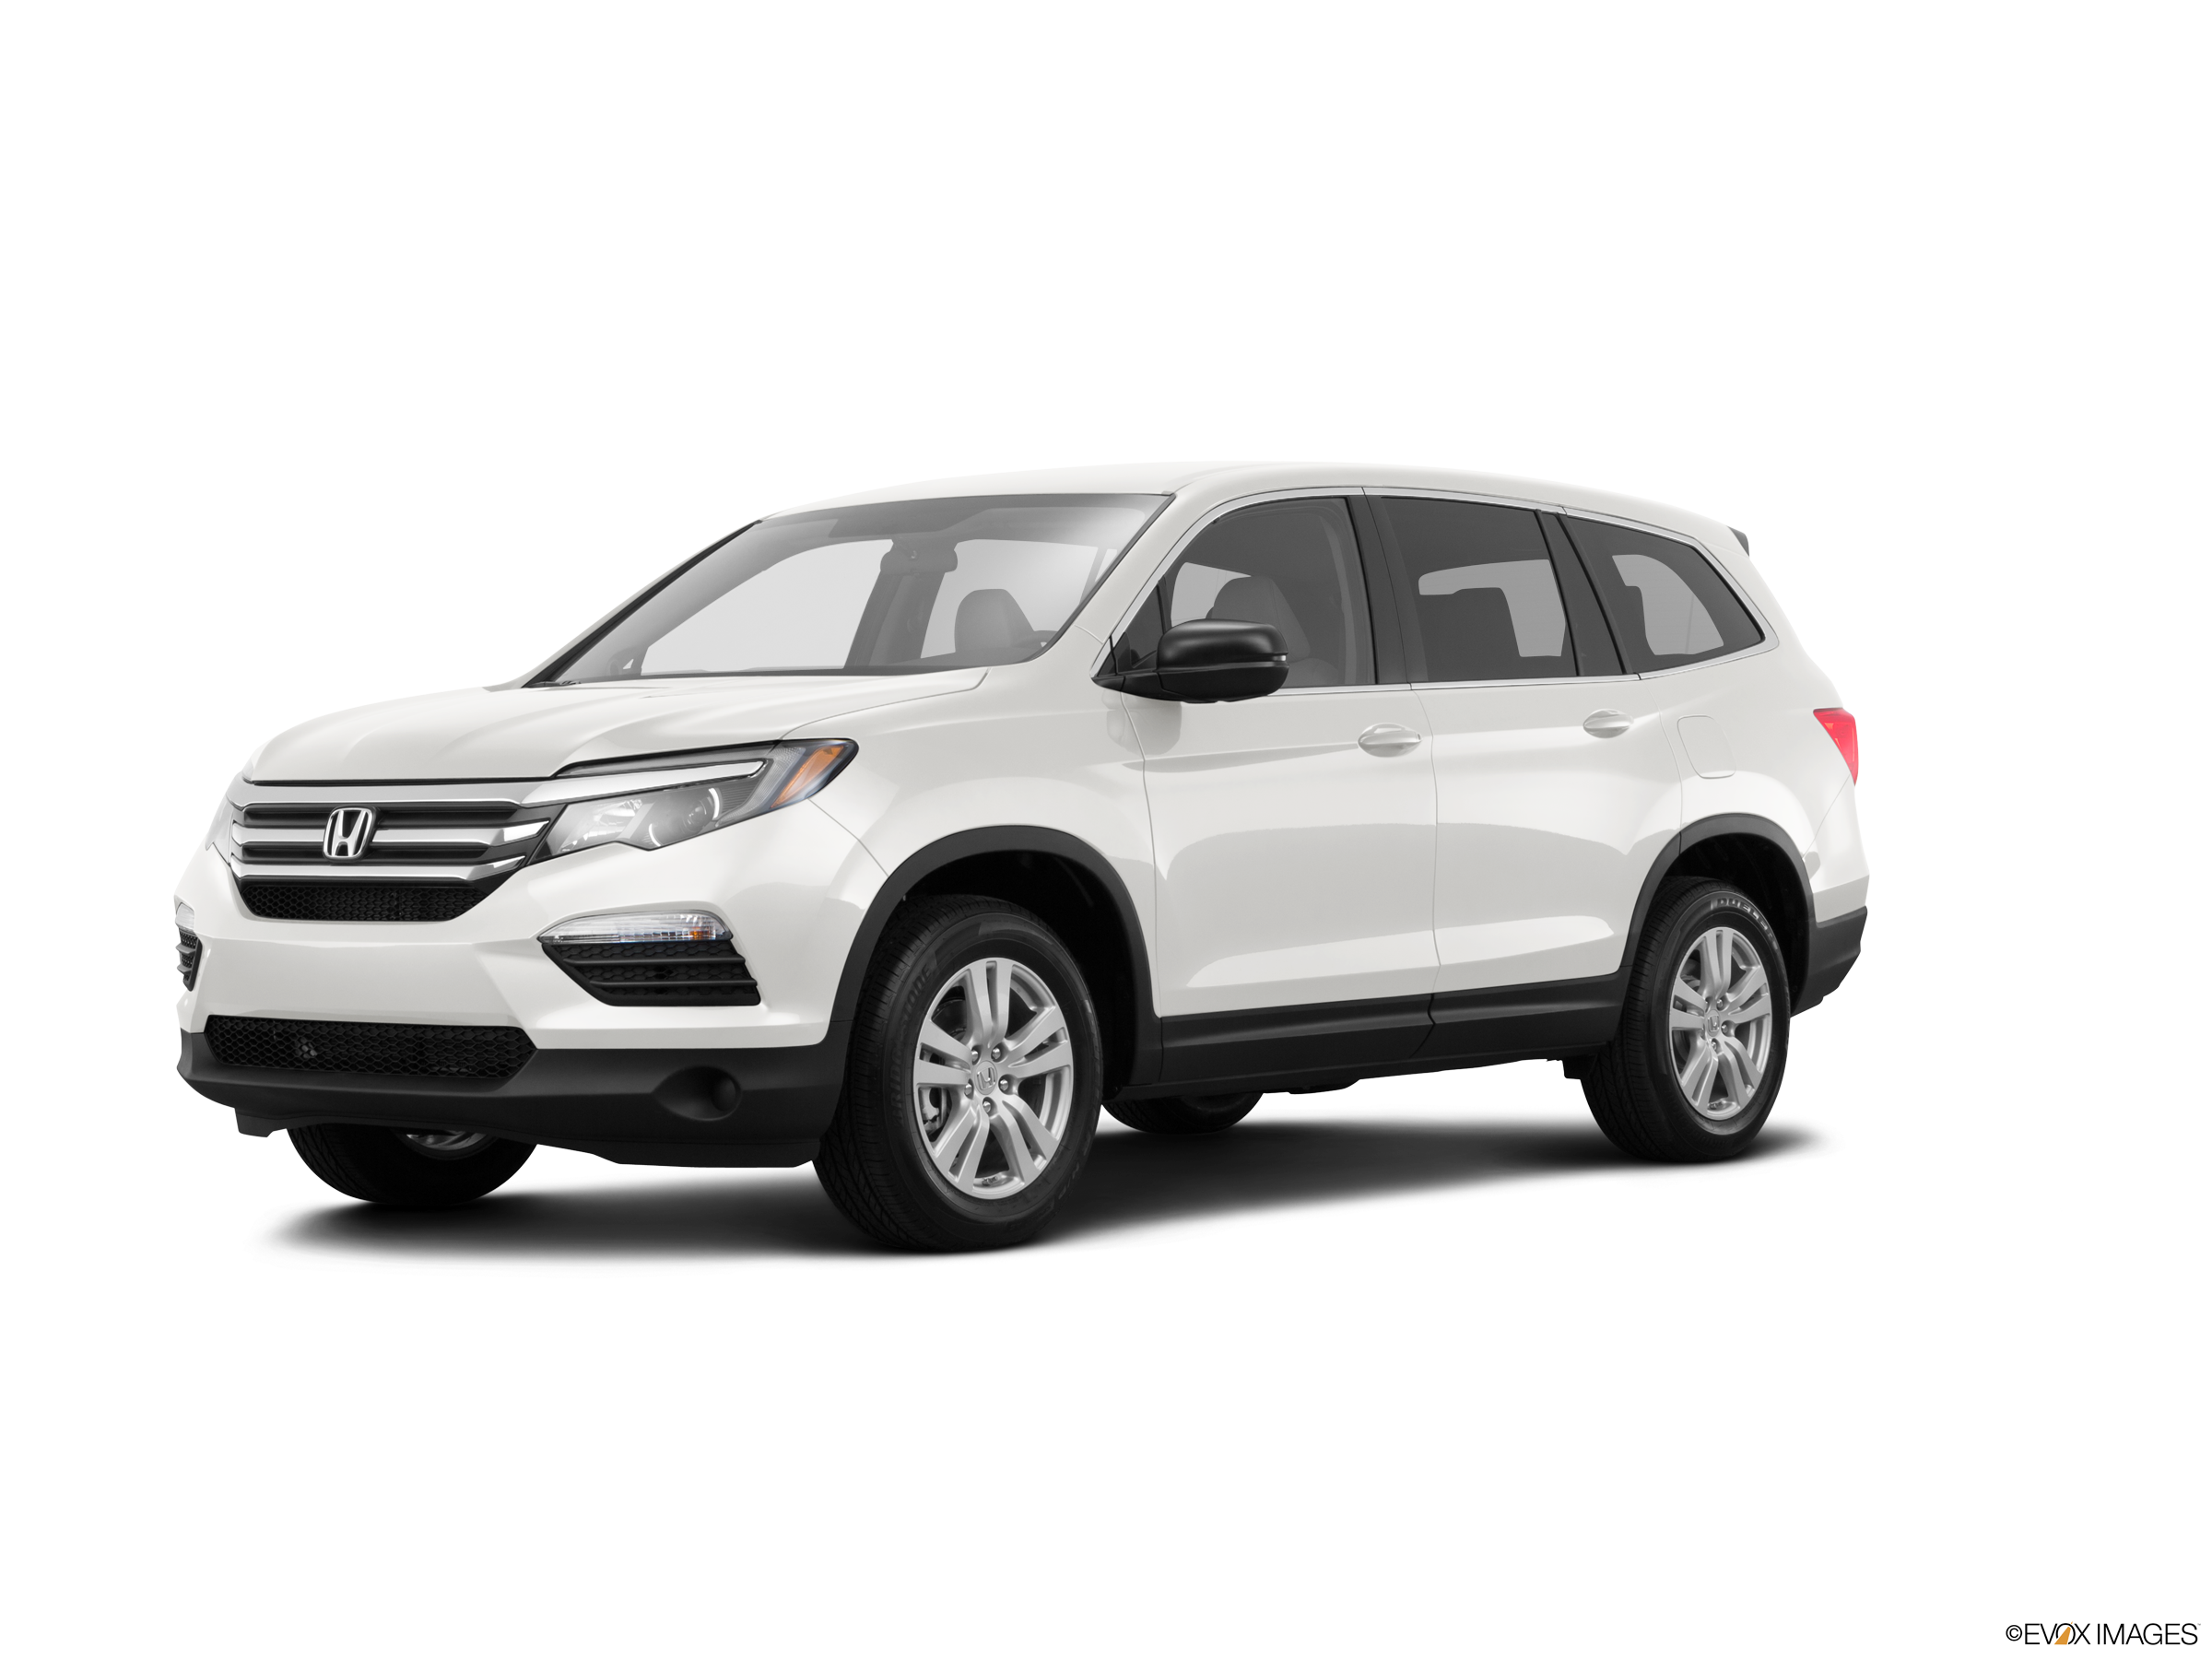 25 Best-Selling SUVs of 2018 - Honda Pilot